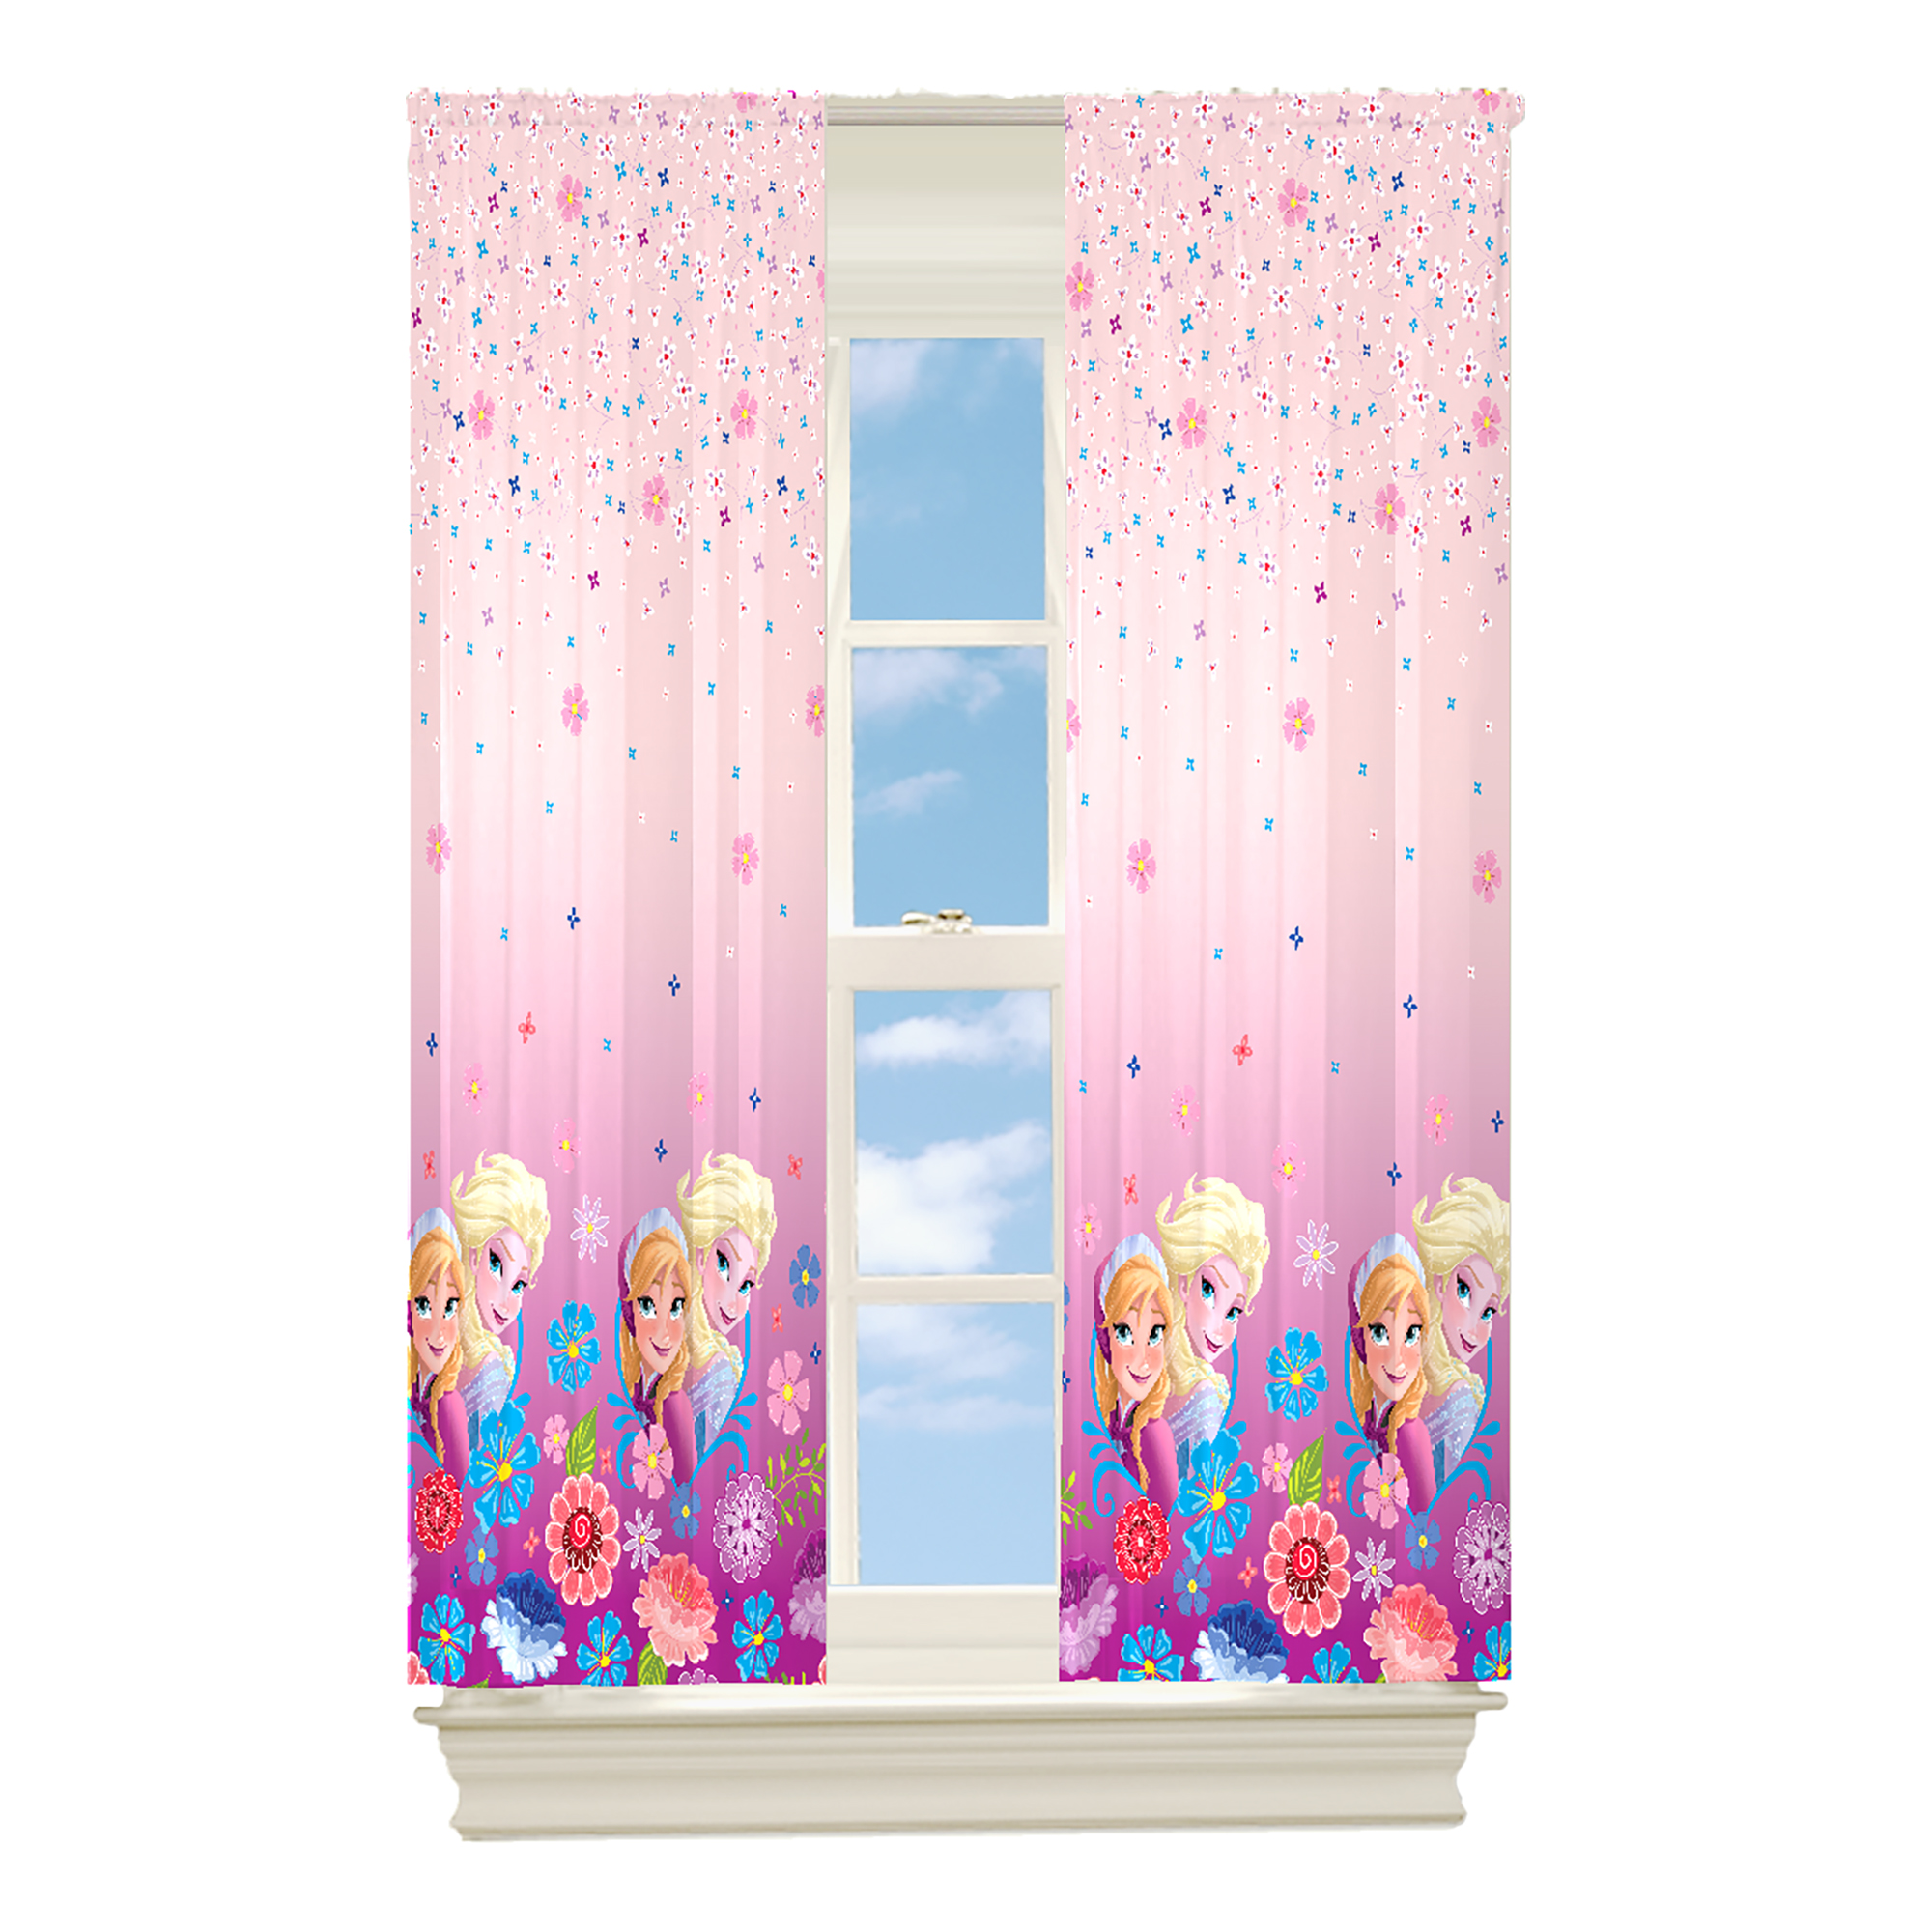 Frozen Anna Elsa Olaf Curtain Curtain Curtain Thermo 2 Obscures Ice Queen New Ebay - Vorhang Installieren